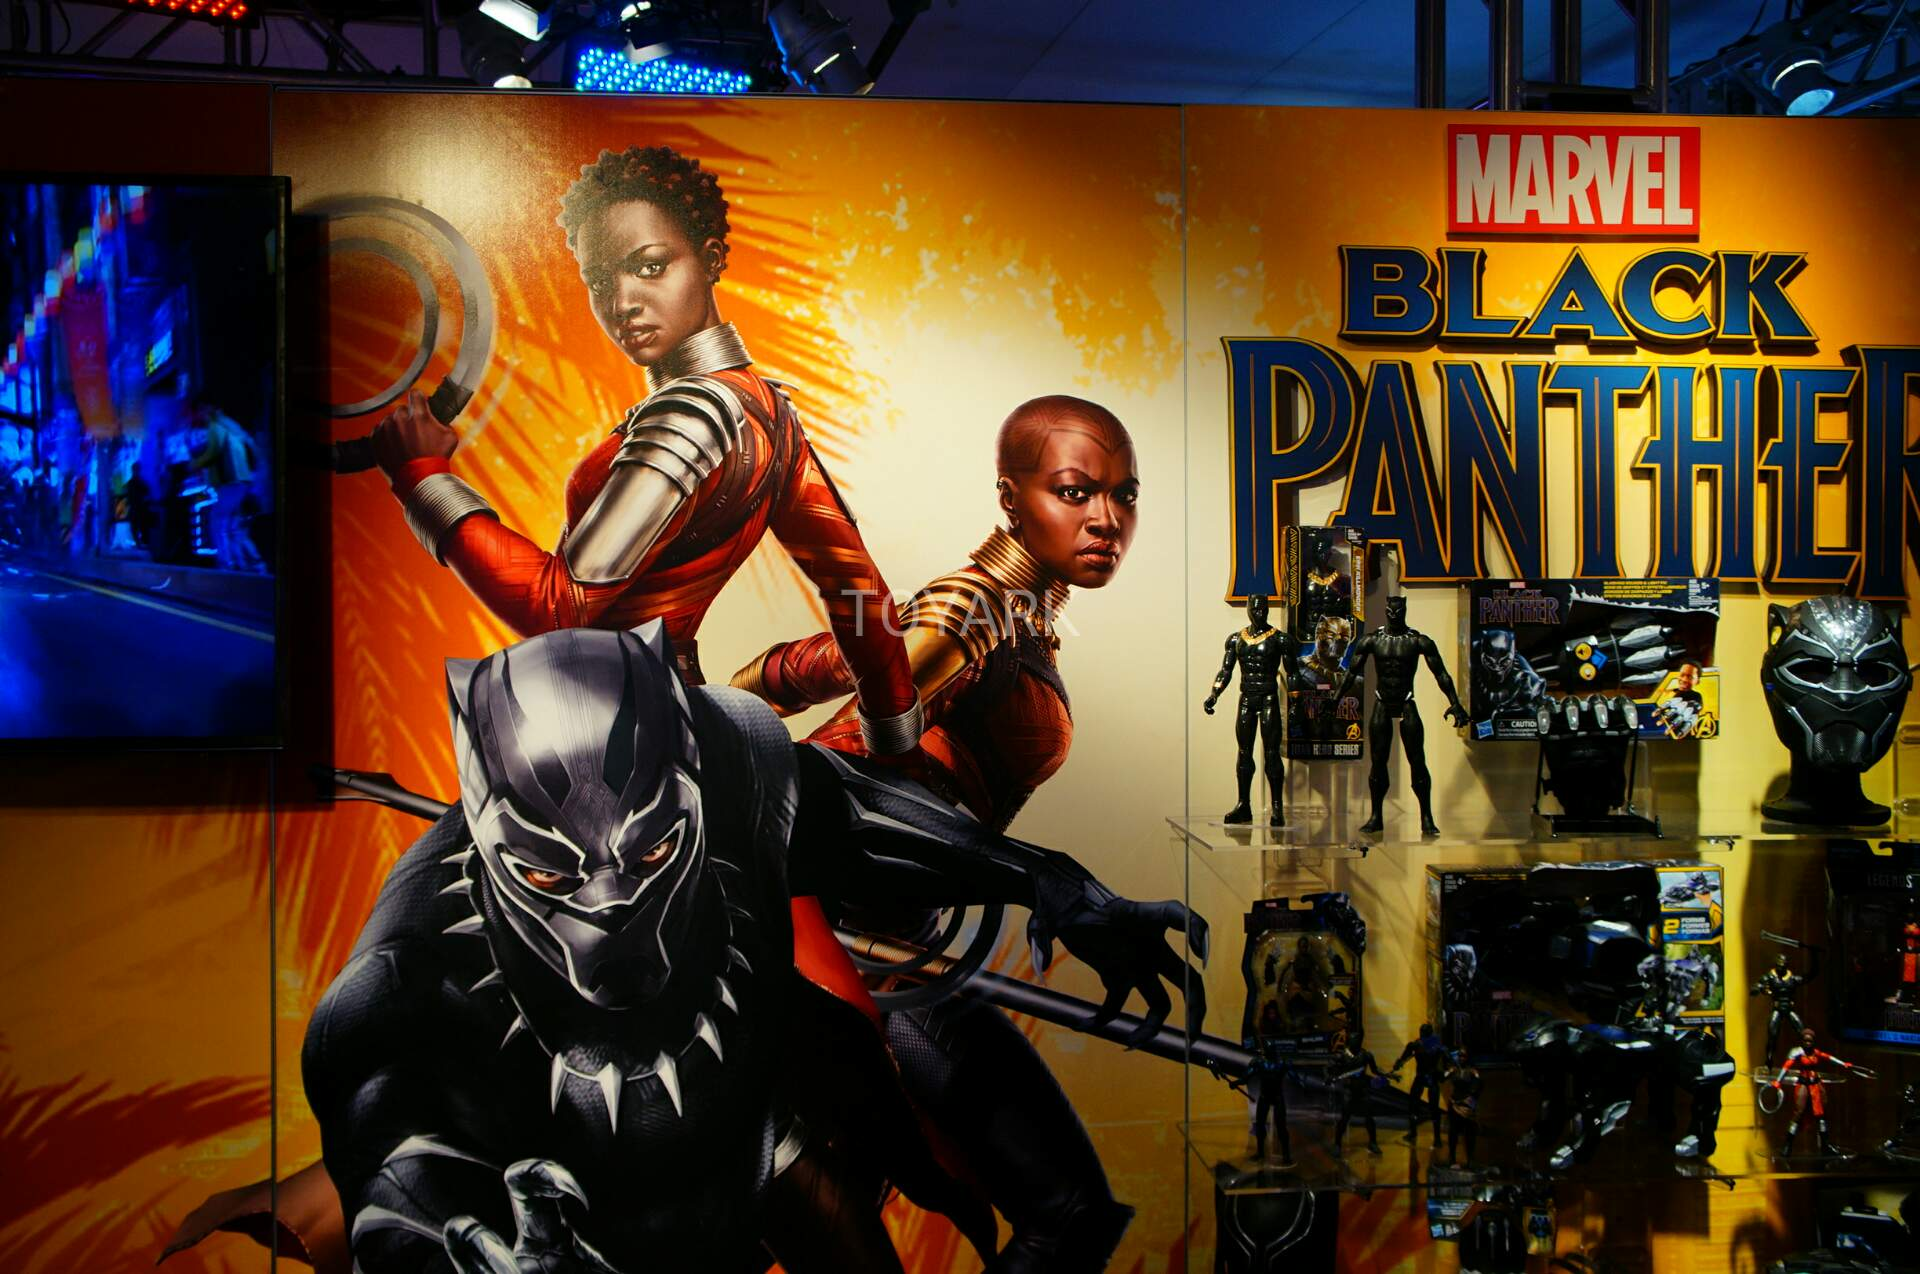 Marvel Toys 2018 : Toy fair hasbro marvel black panther and spider man